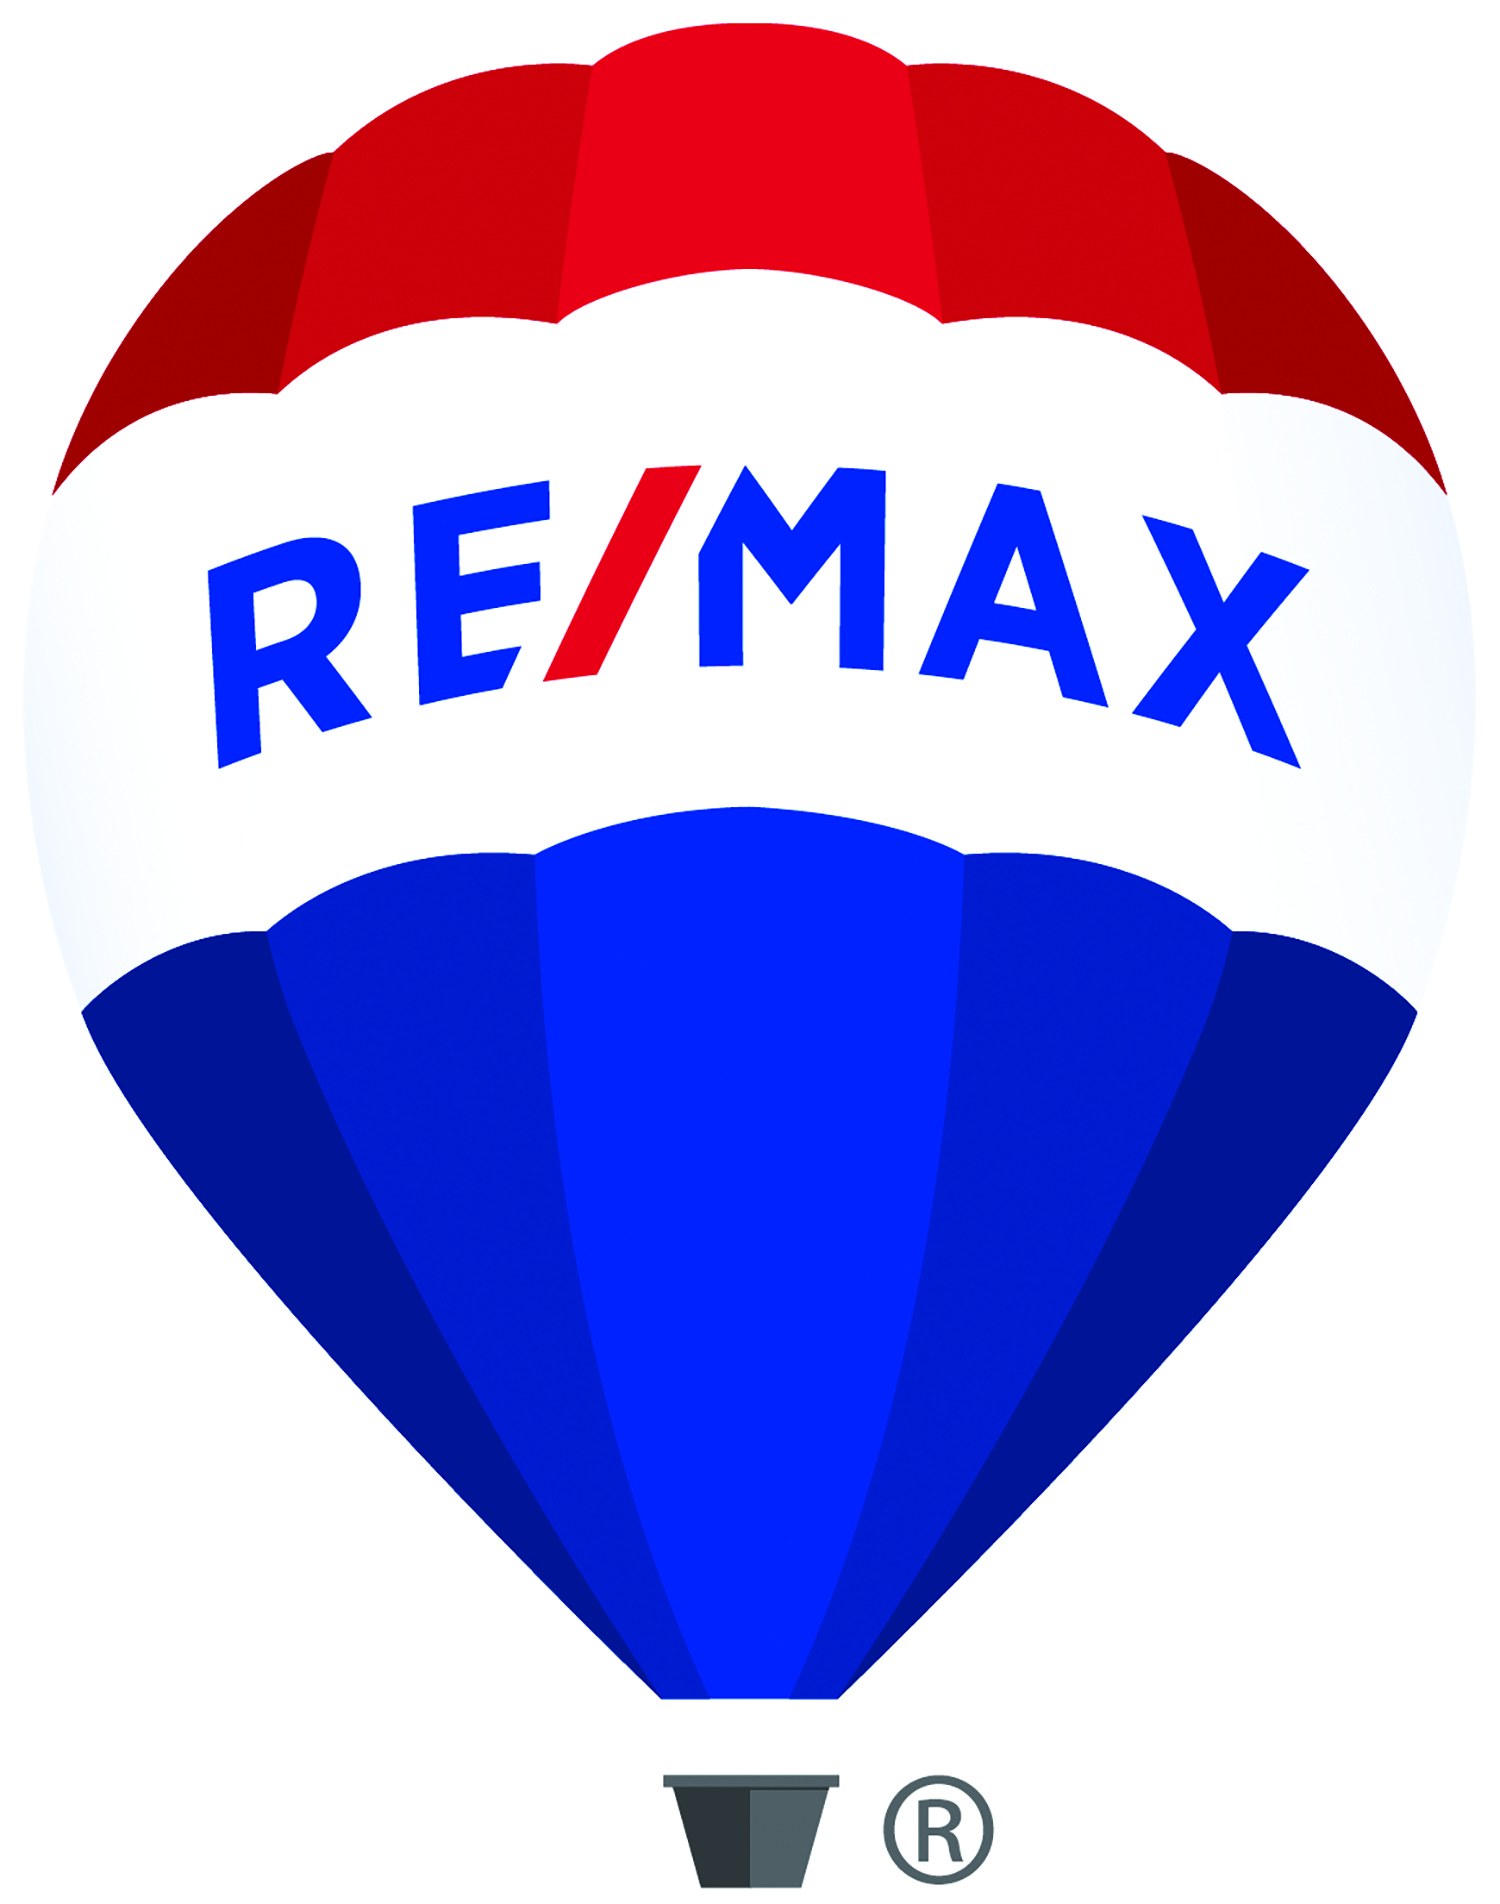 REMAXXballoon.jpg